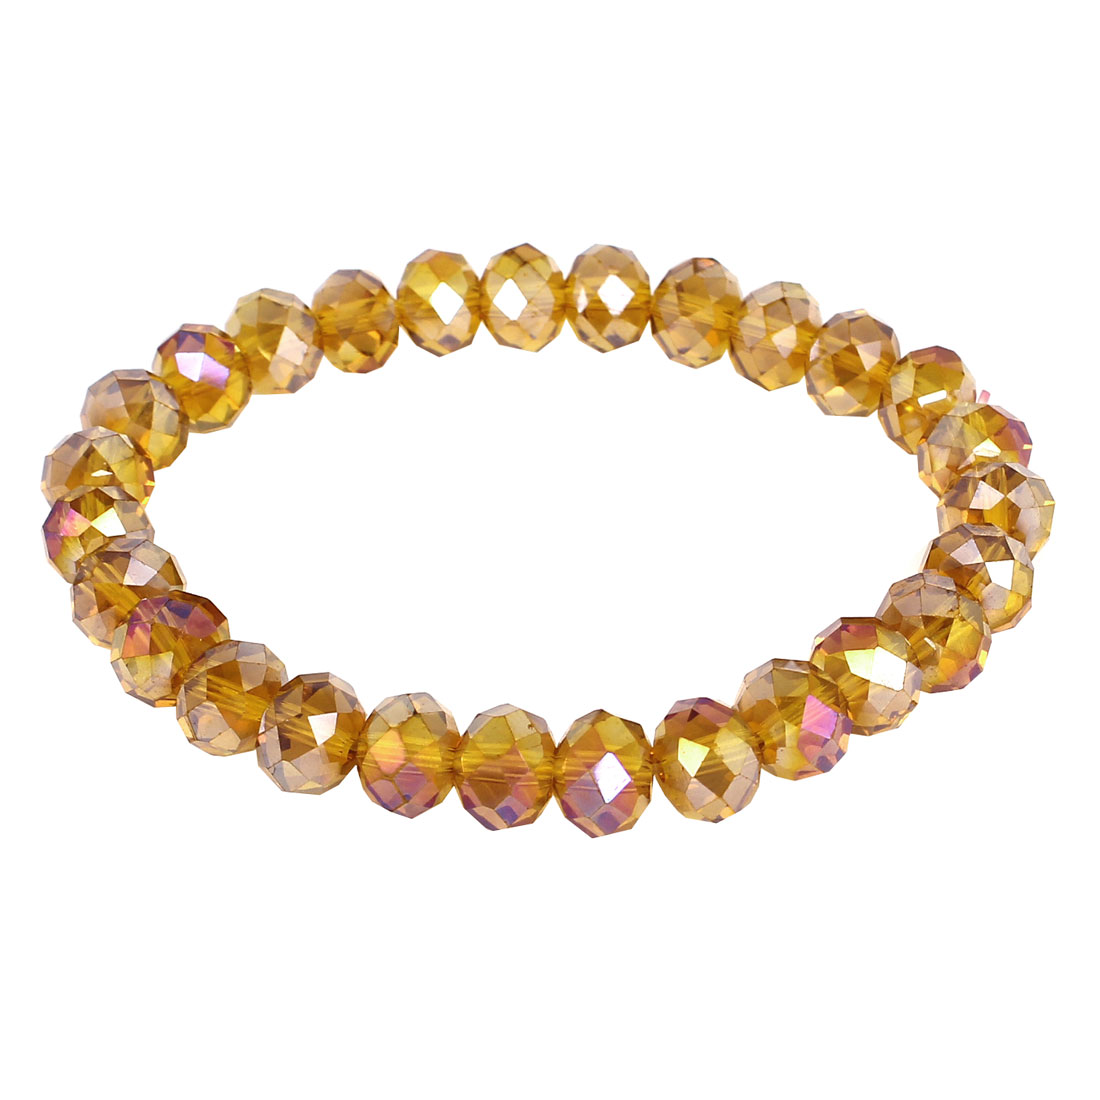 Women Faux Crystal Decoration Stretchy Wrist Chain Bangle Bracelet Orange